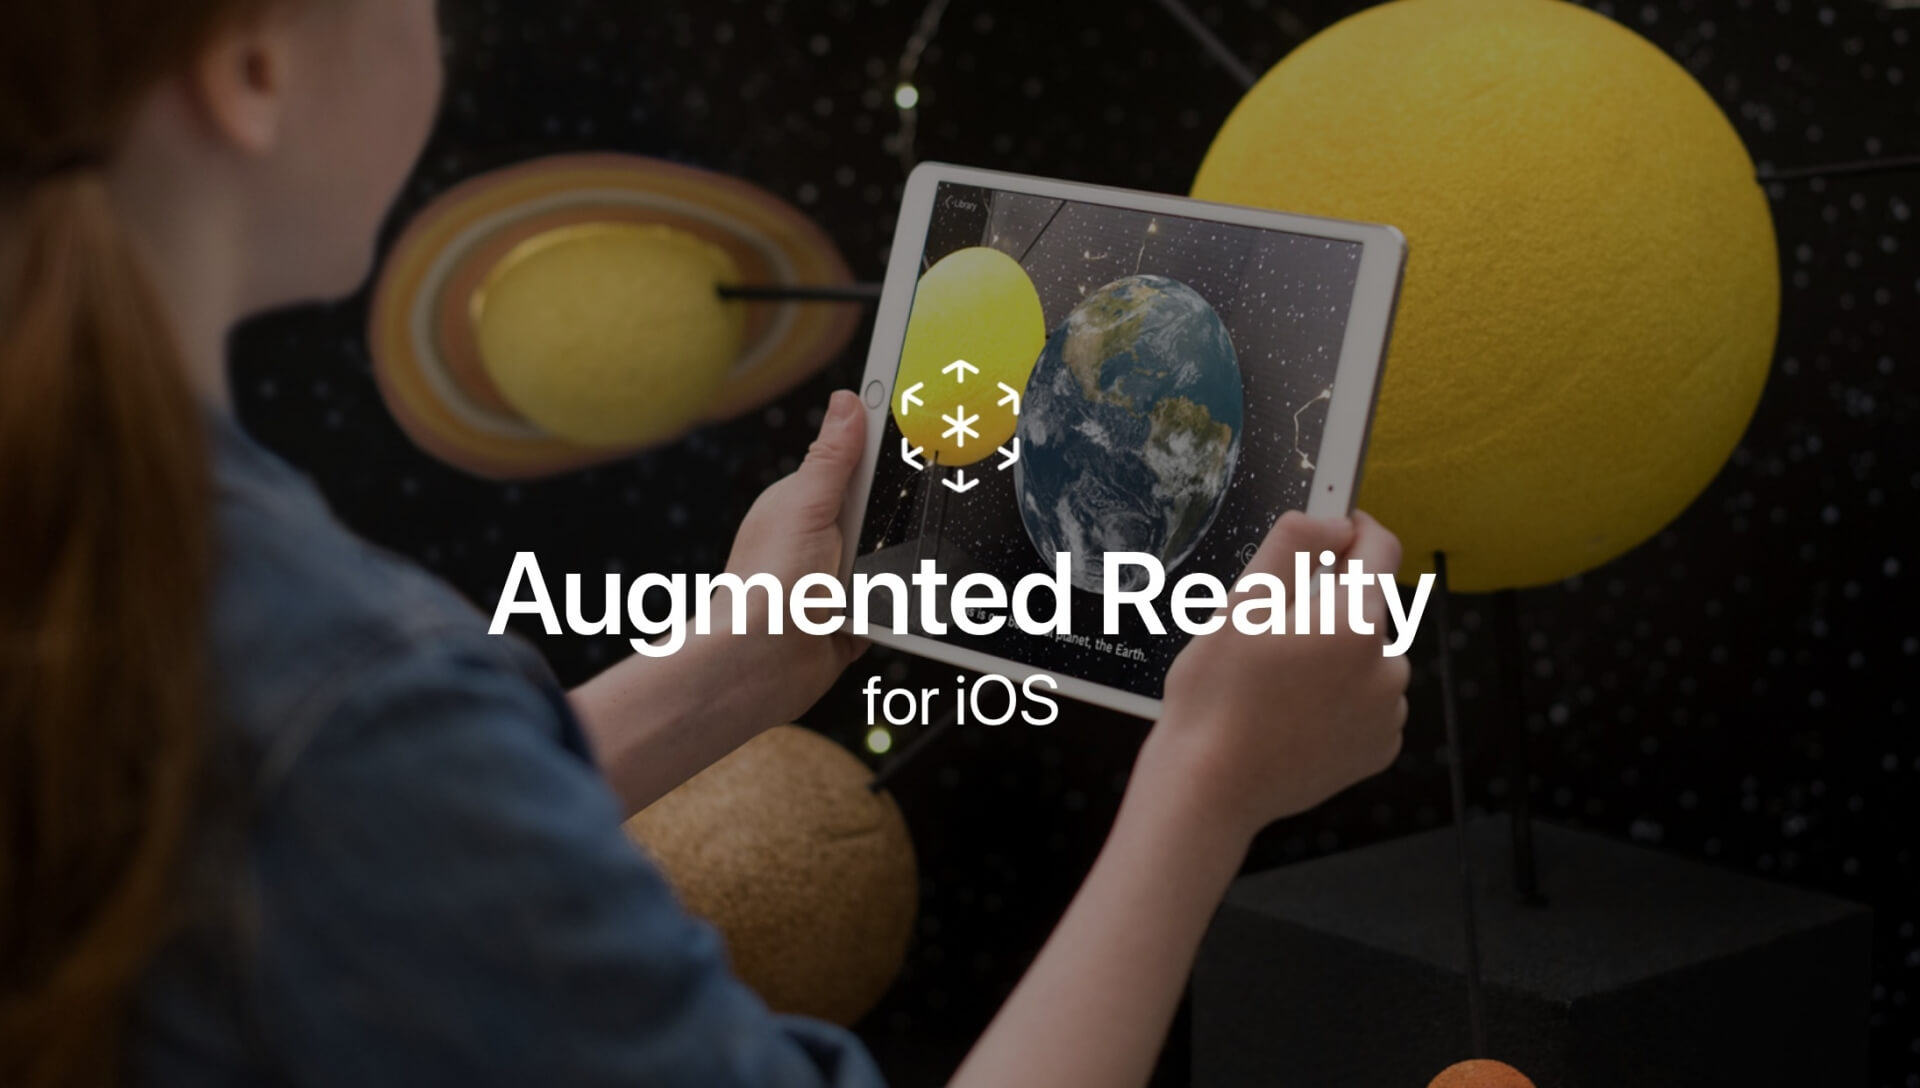 AR for iOS